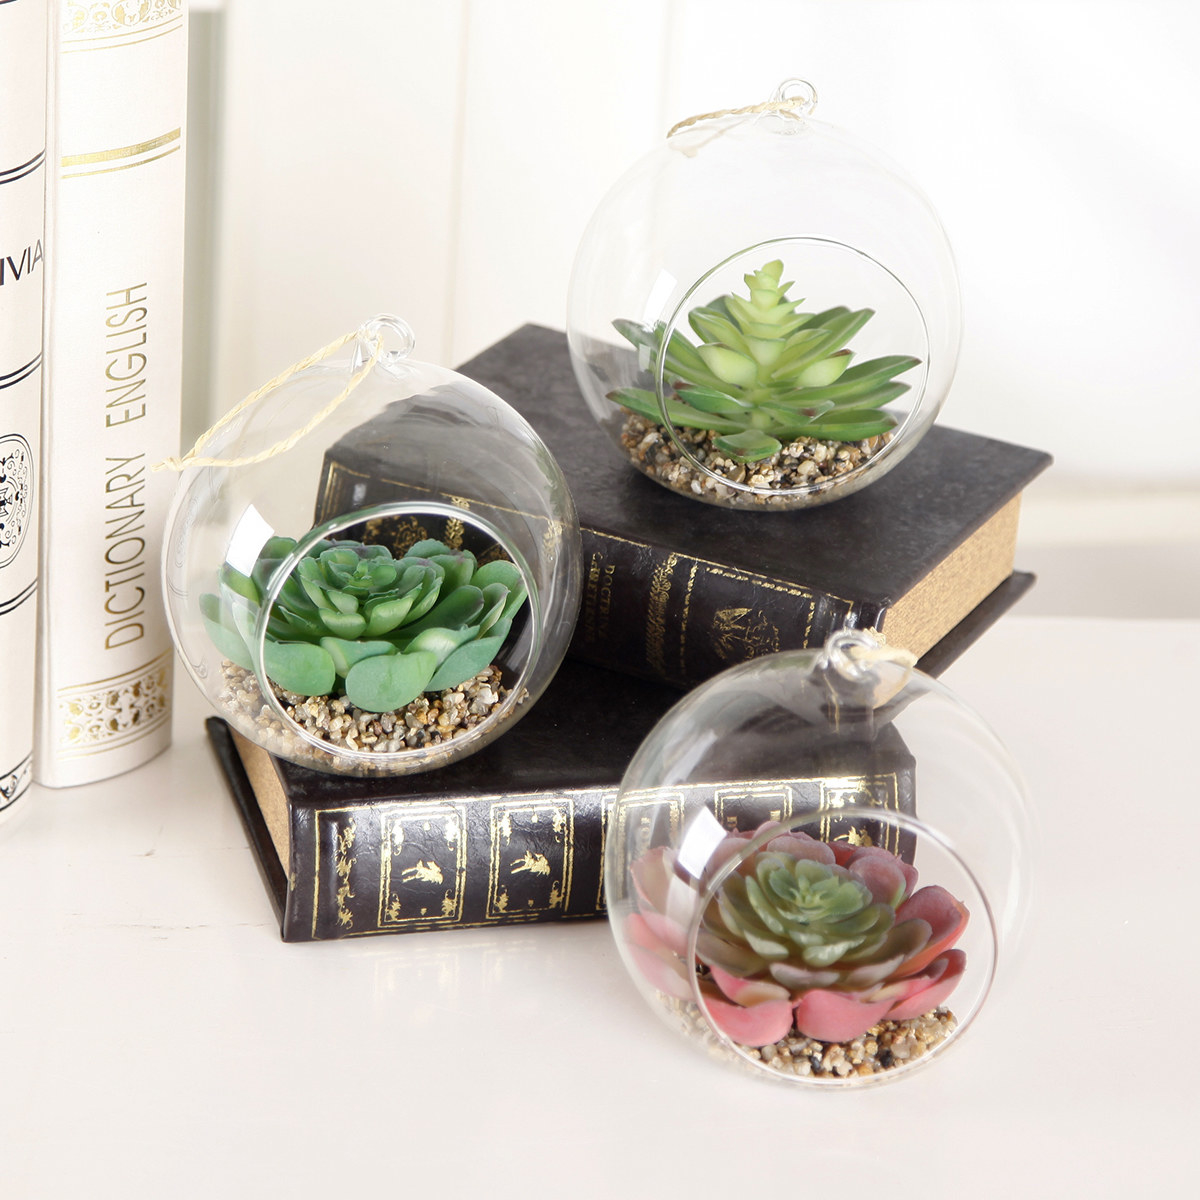 the three succulents